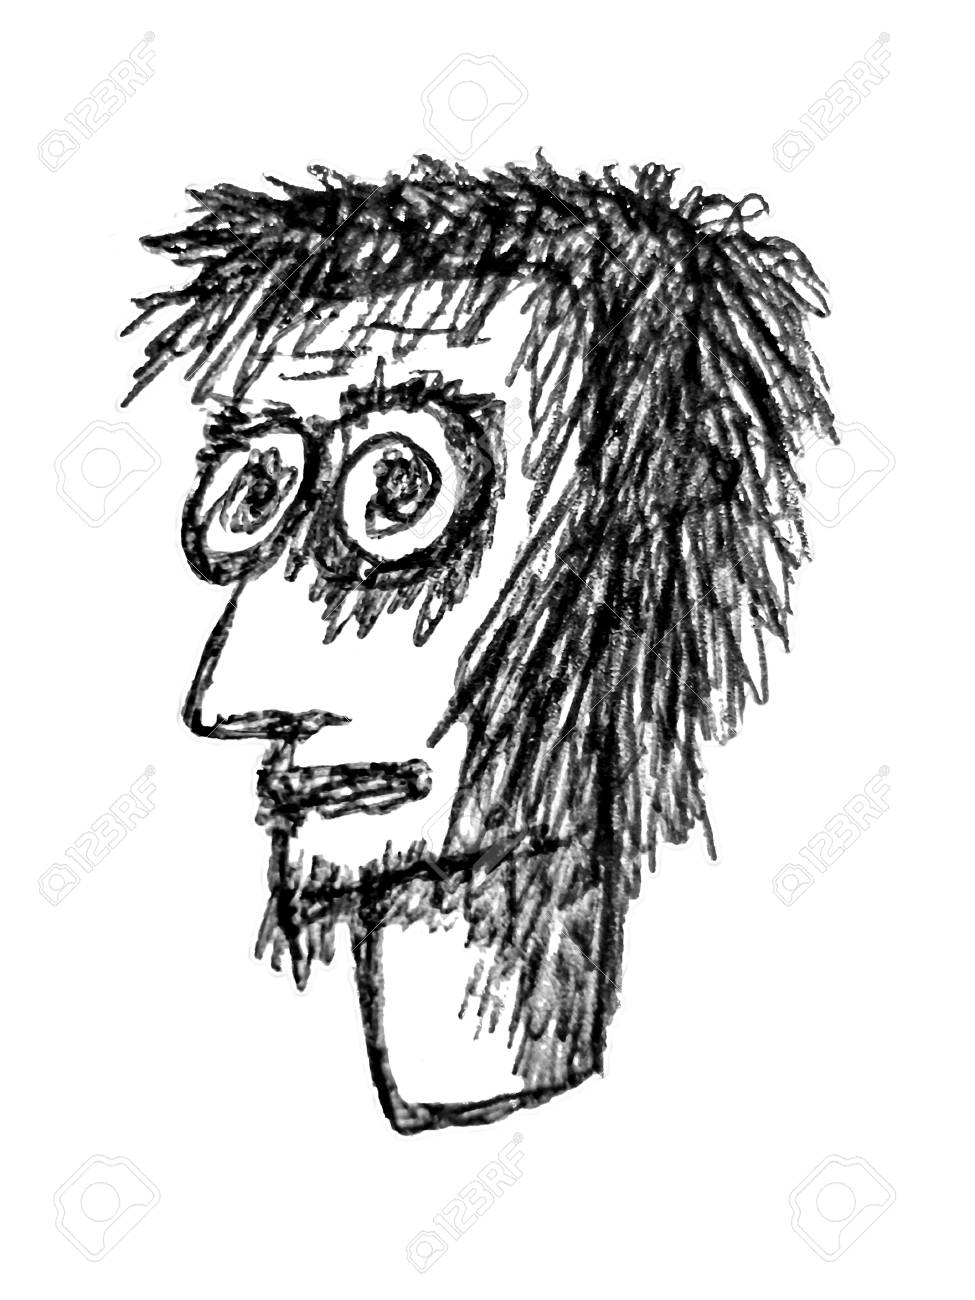 Black and white pencil drawing man head caricature on white background